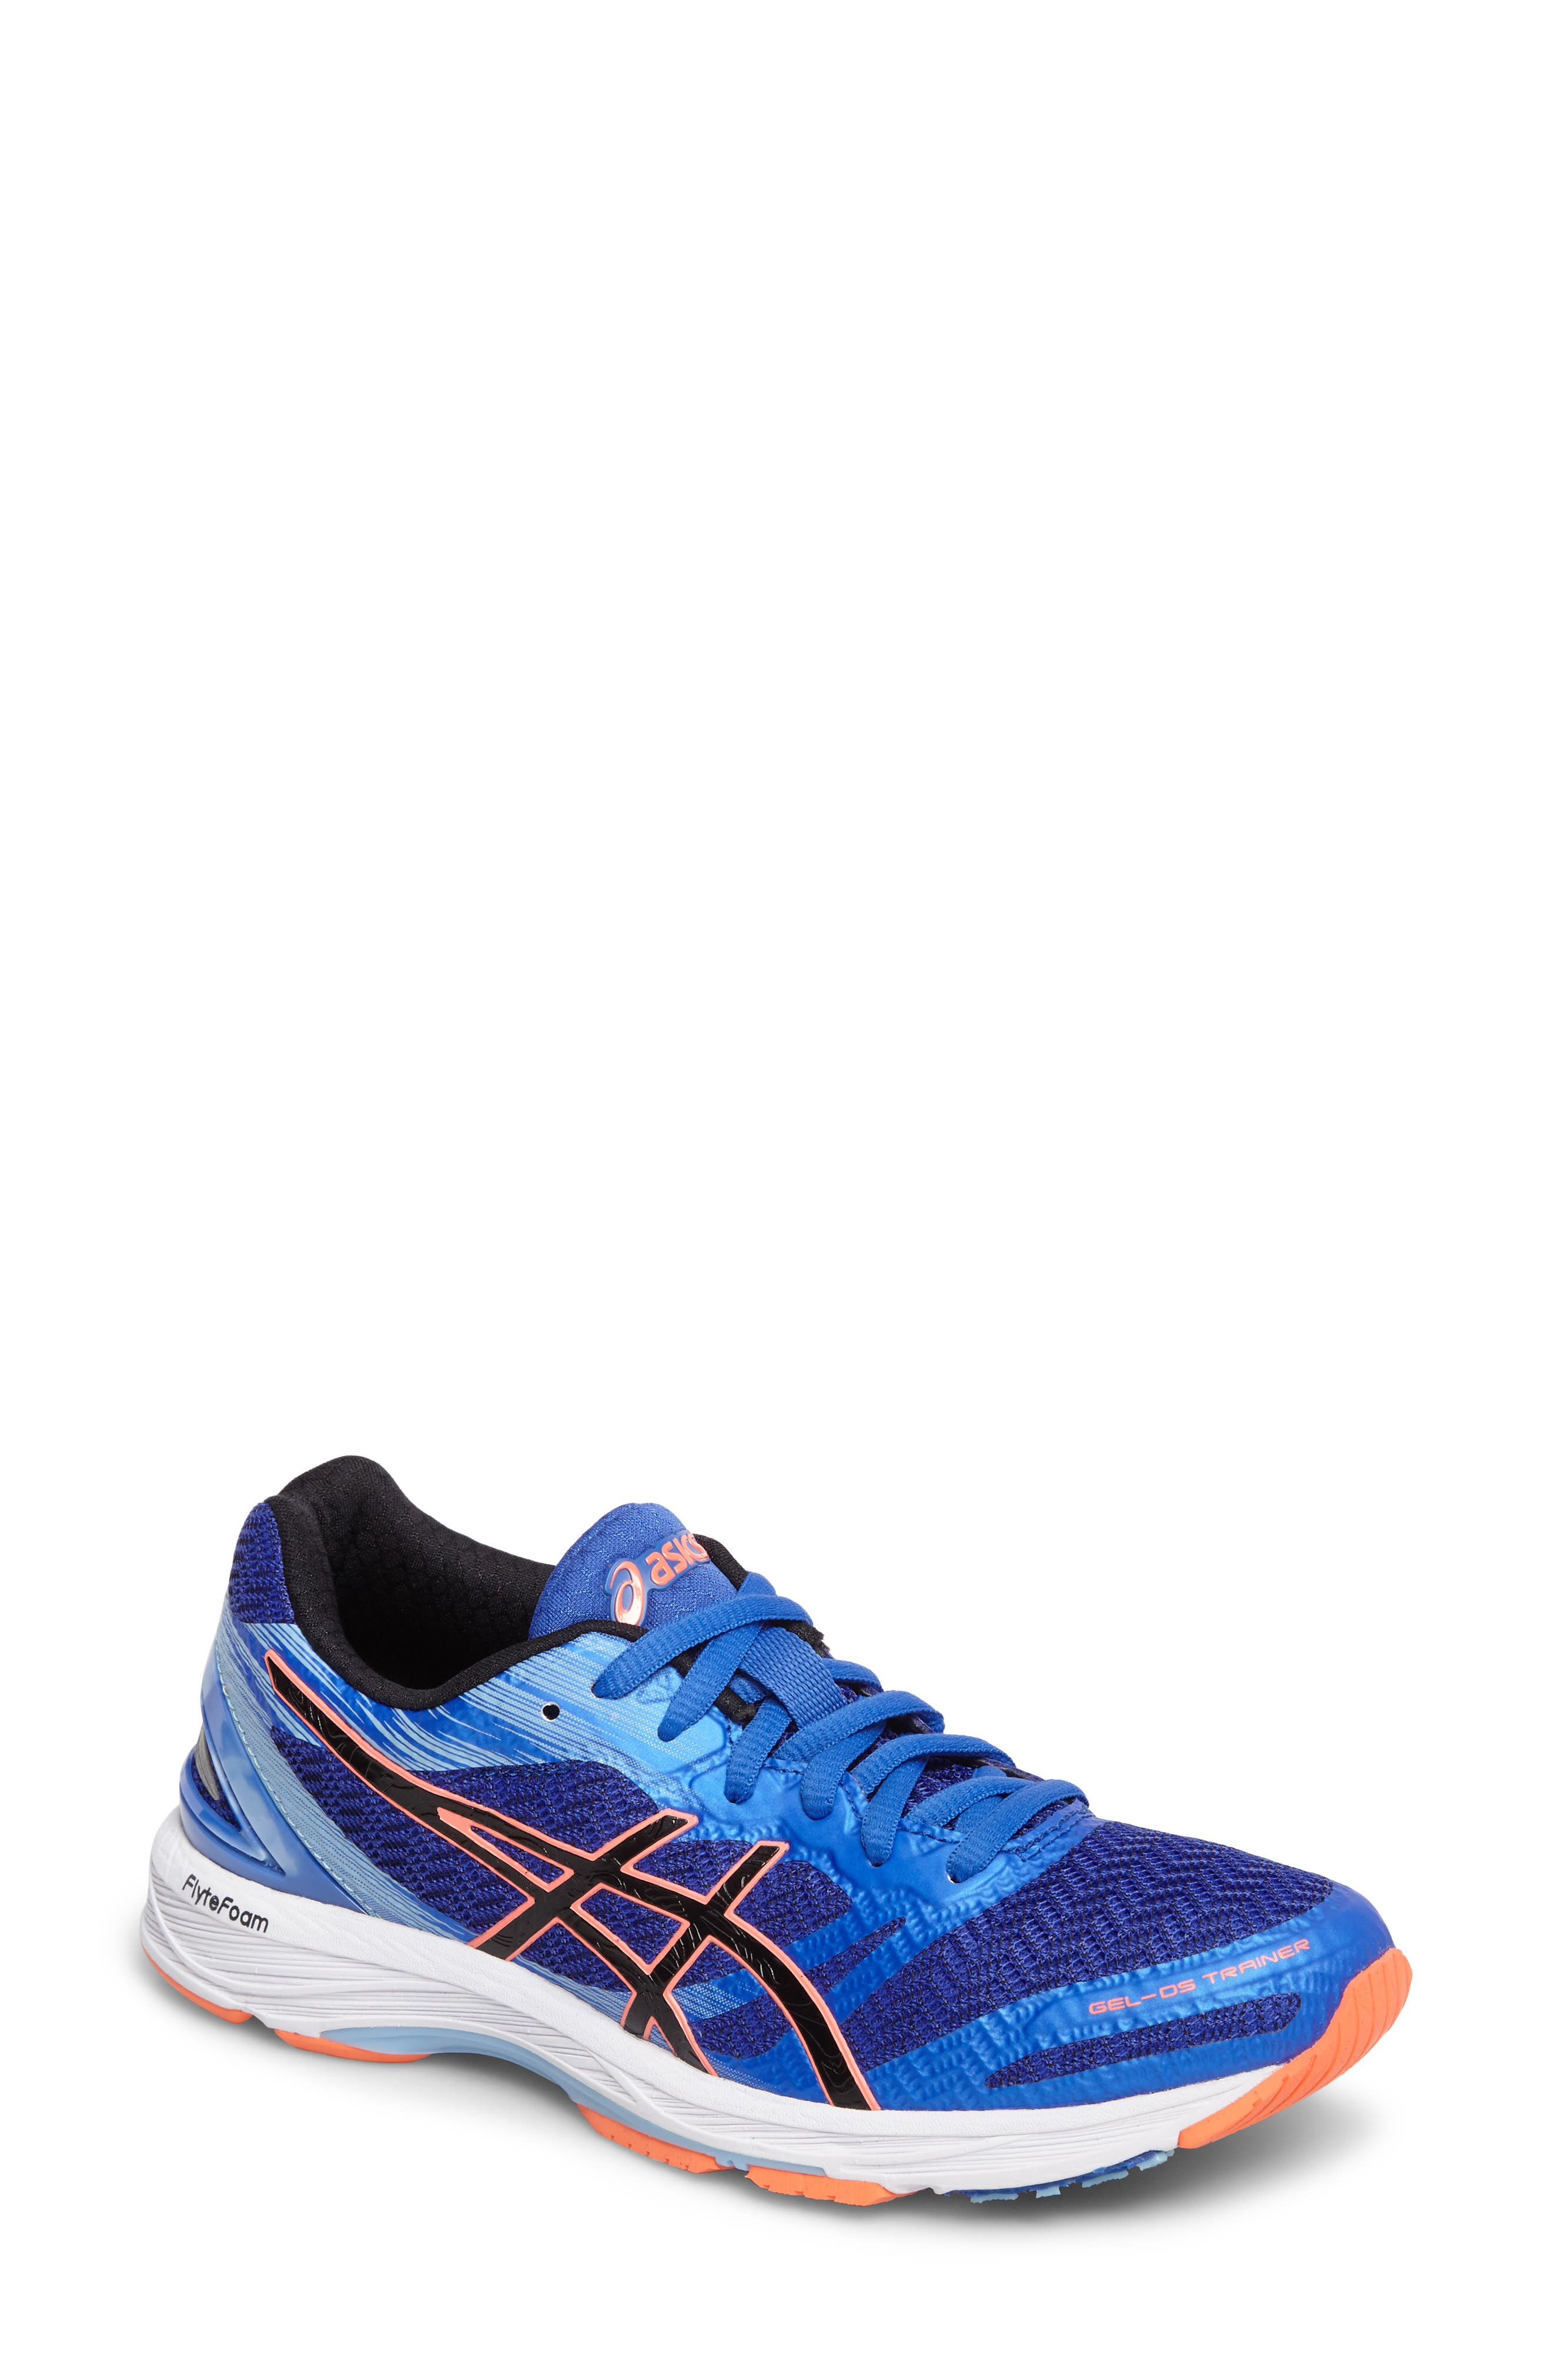 GEL-DS Trainer 22 Running Shoe,                             Main thumbnail 1, color,                             480